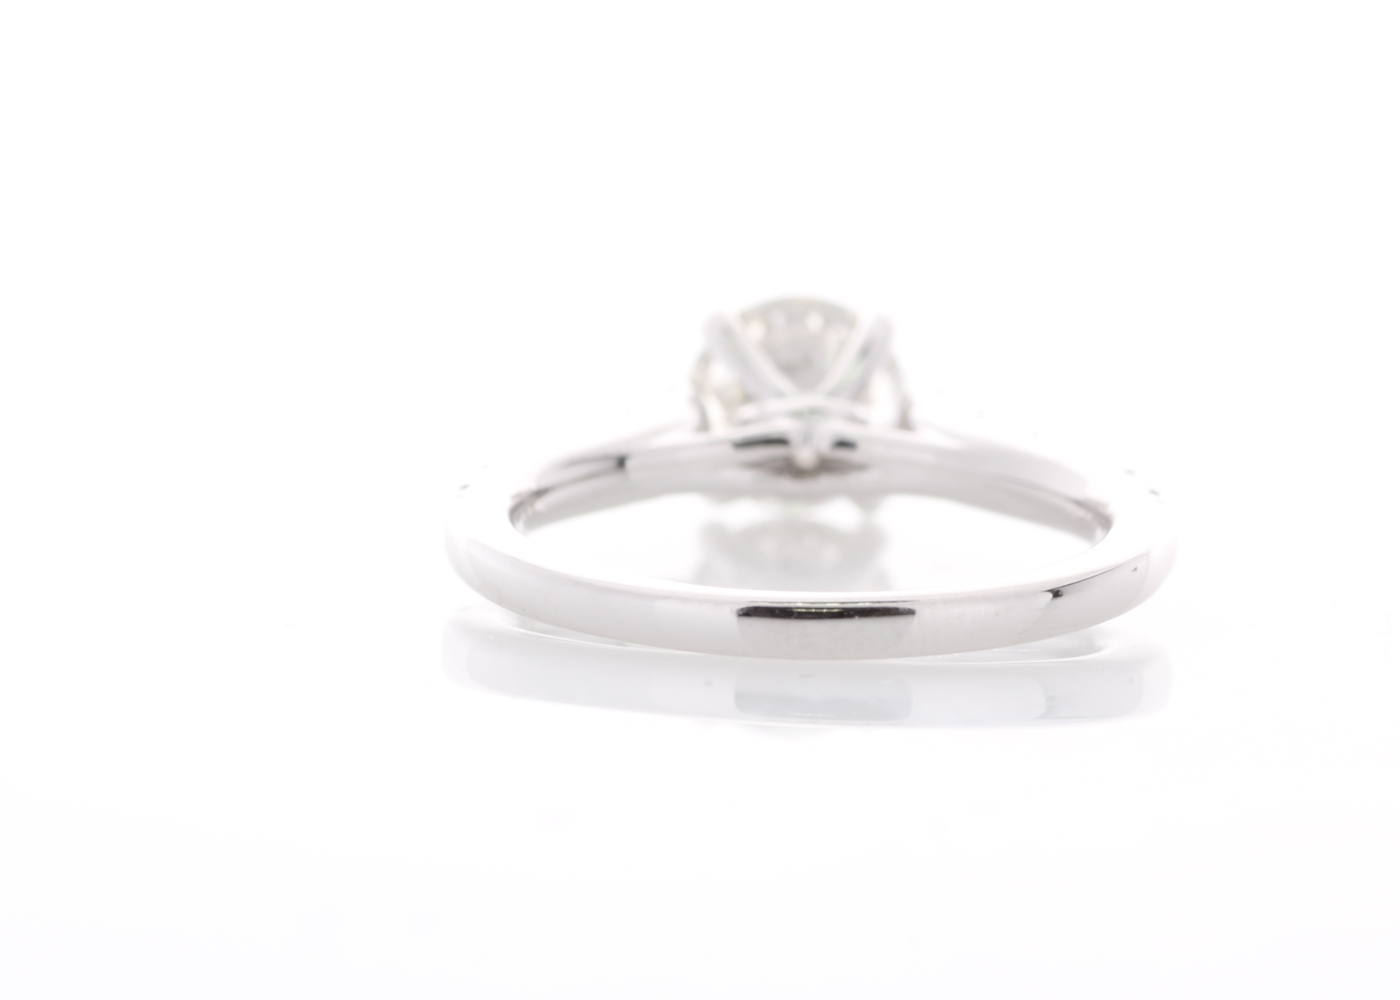 18ct White Gold Stone Set Shoulders Diamond Ring 1.47 Carats - Image 3 of 5